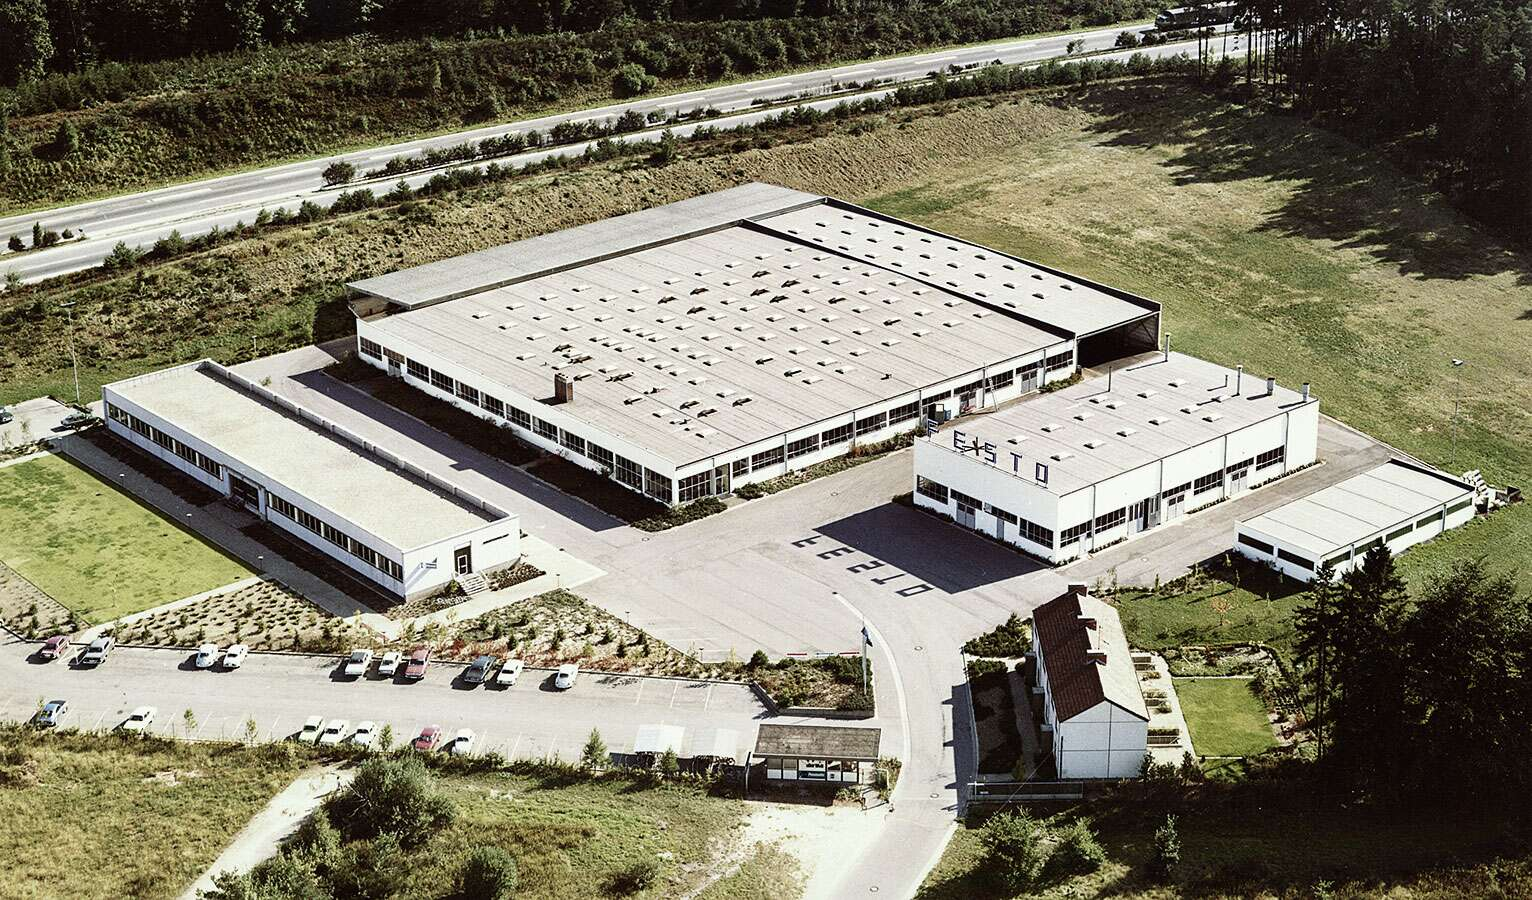 The Festo plant premises in 1969 in Rohrbach with two production halls, a distribution centre and the training workshop.